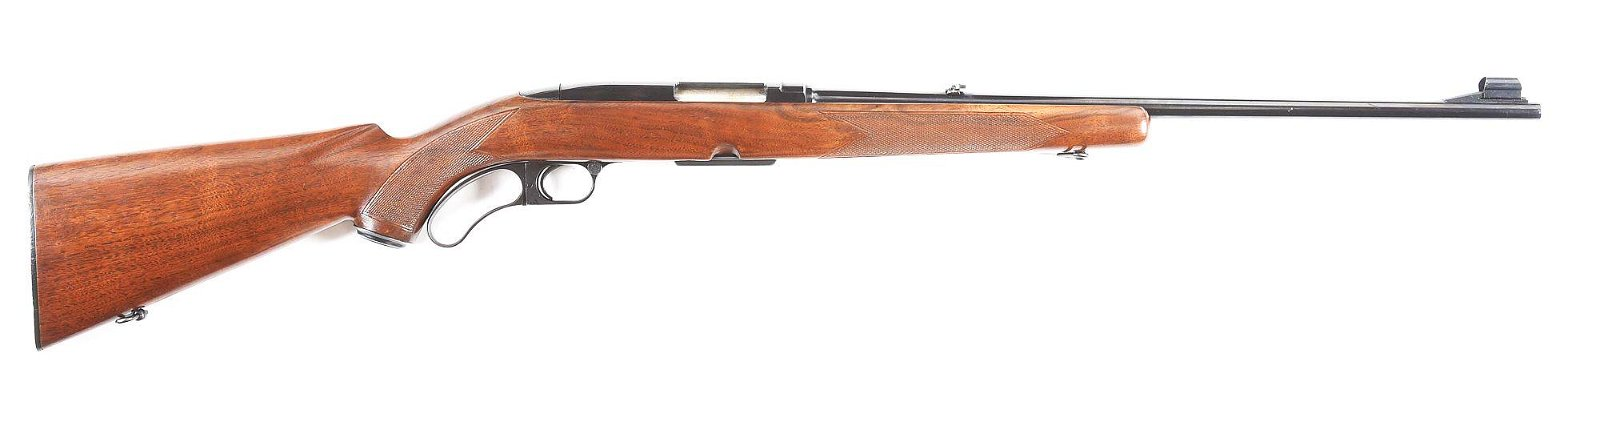 (C) WINCHESTER MODEL 88 .358 WINCHESTER LEVER ACTION